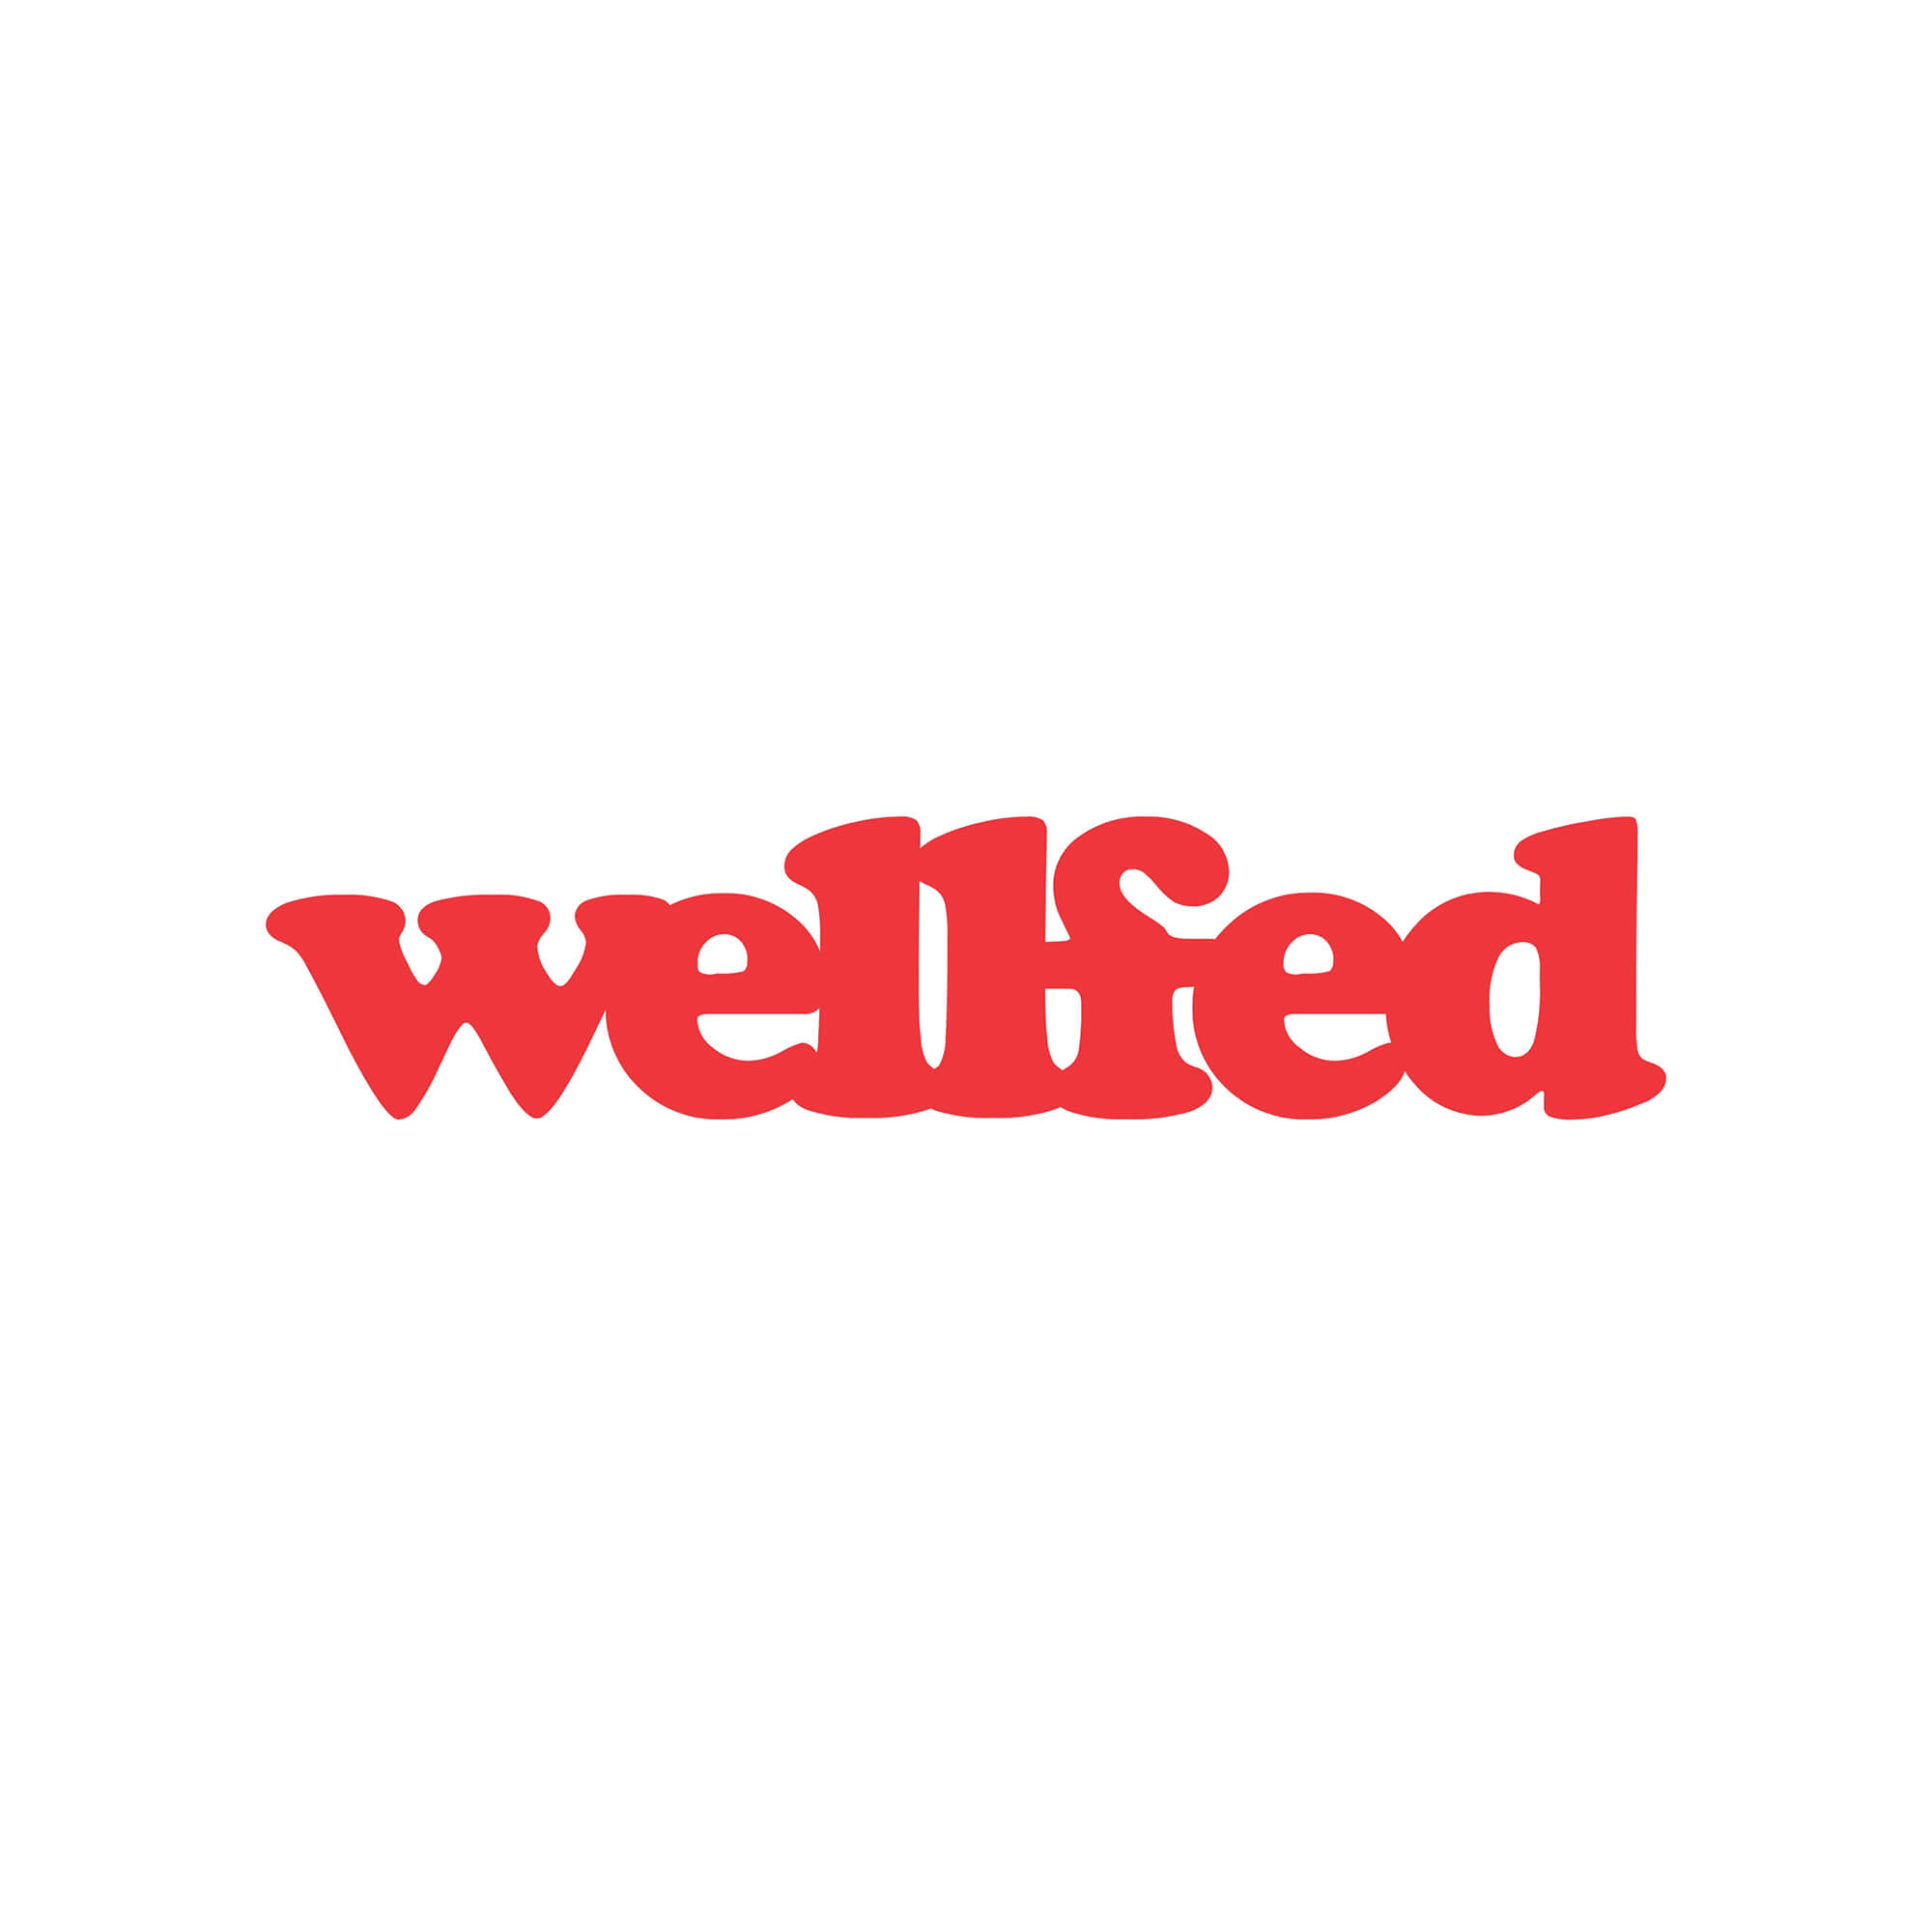 Wellfed Brand Design Logo